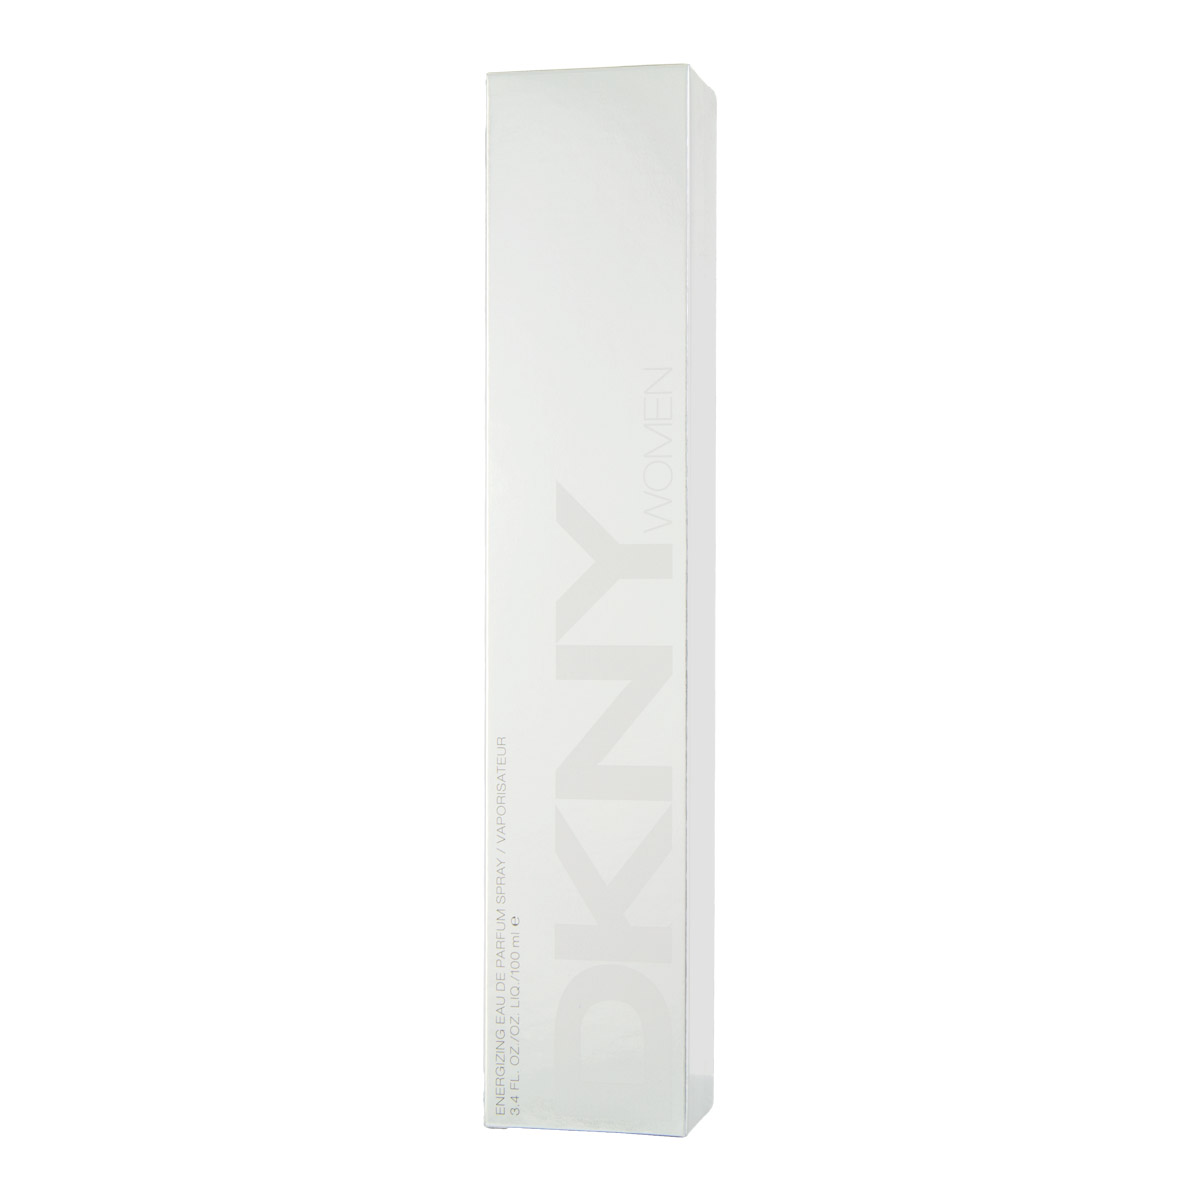 DKNY Donna Karan Energizing 2011 EDP 100 ml W